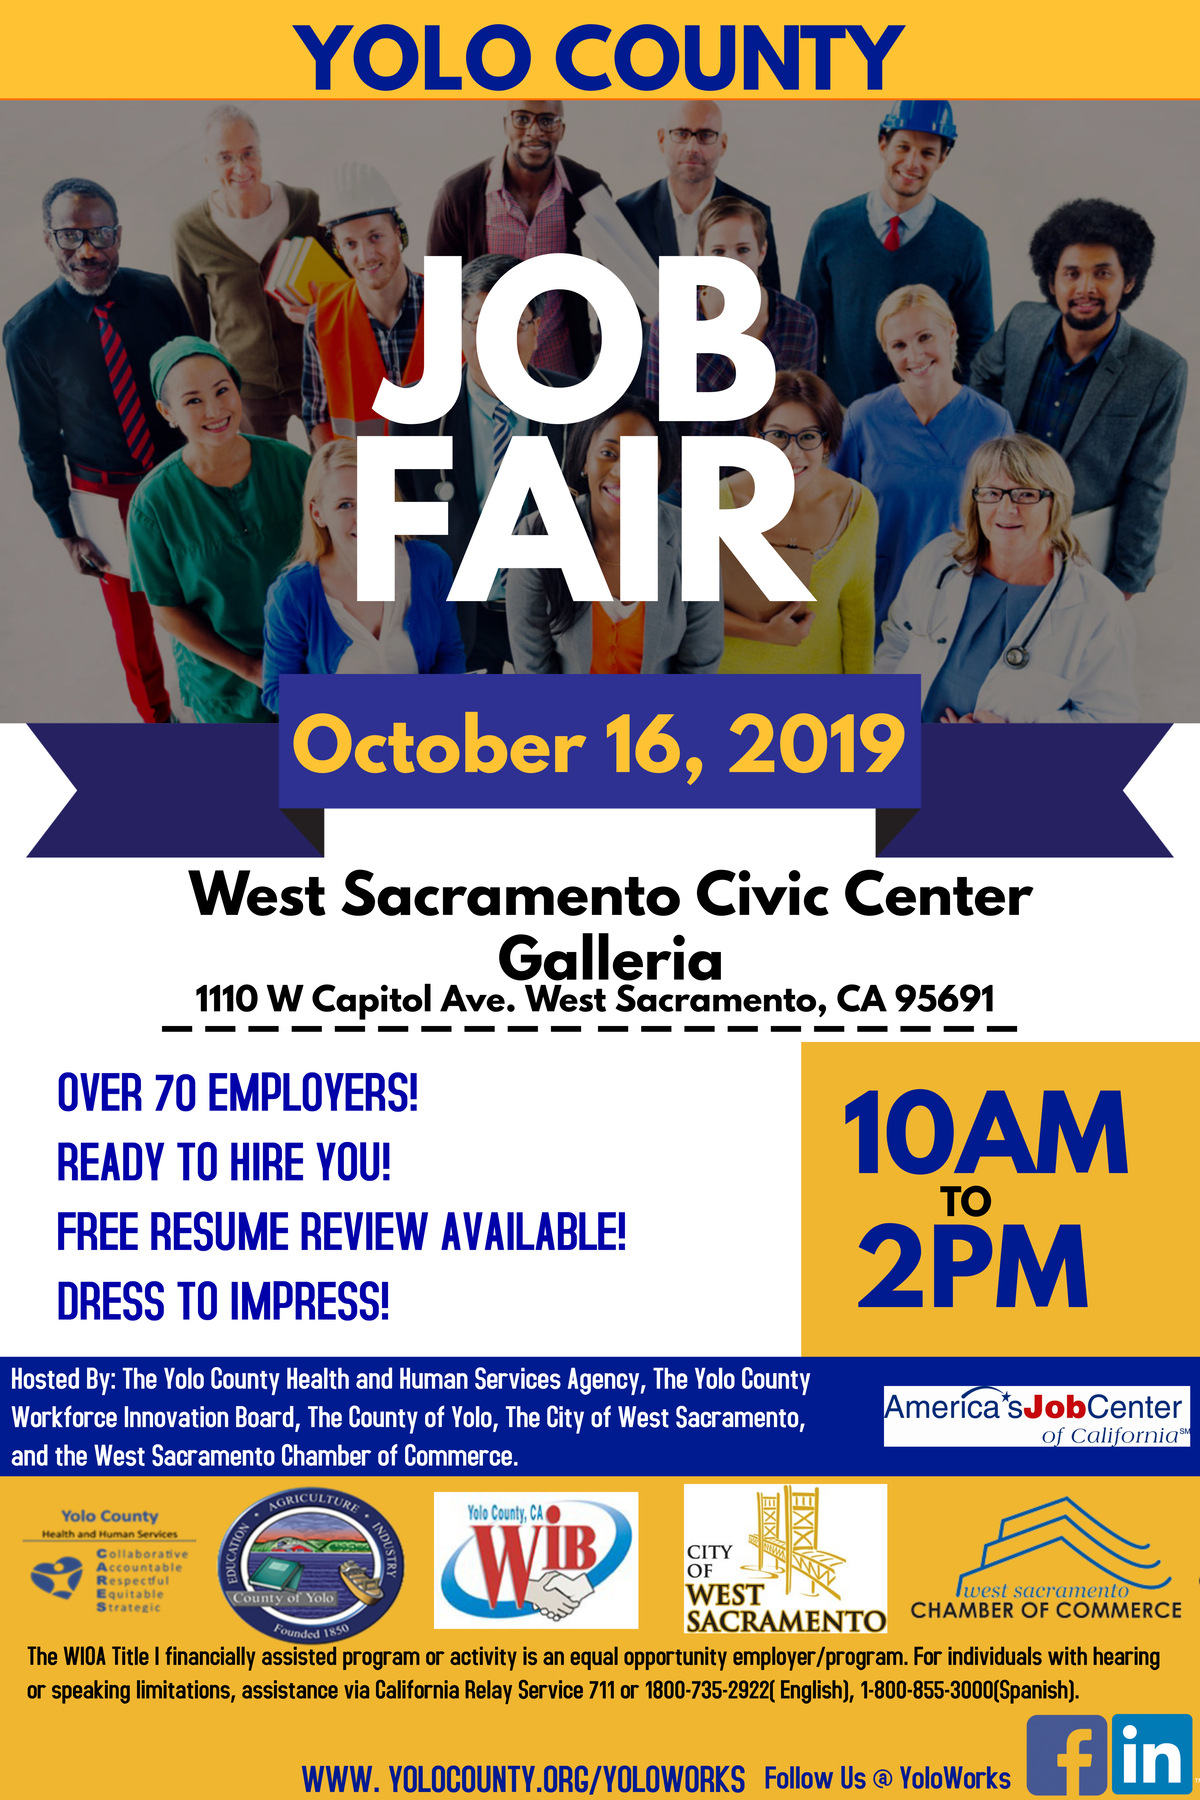 October 16th Job Fair Flyer Social Media